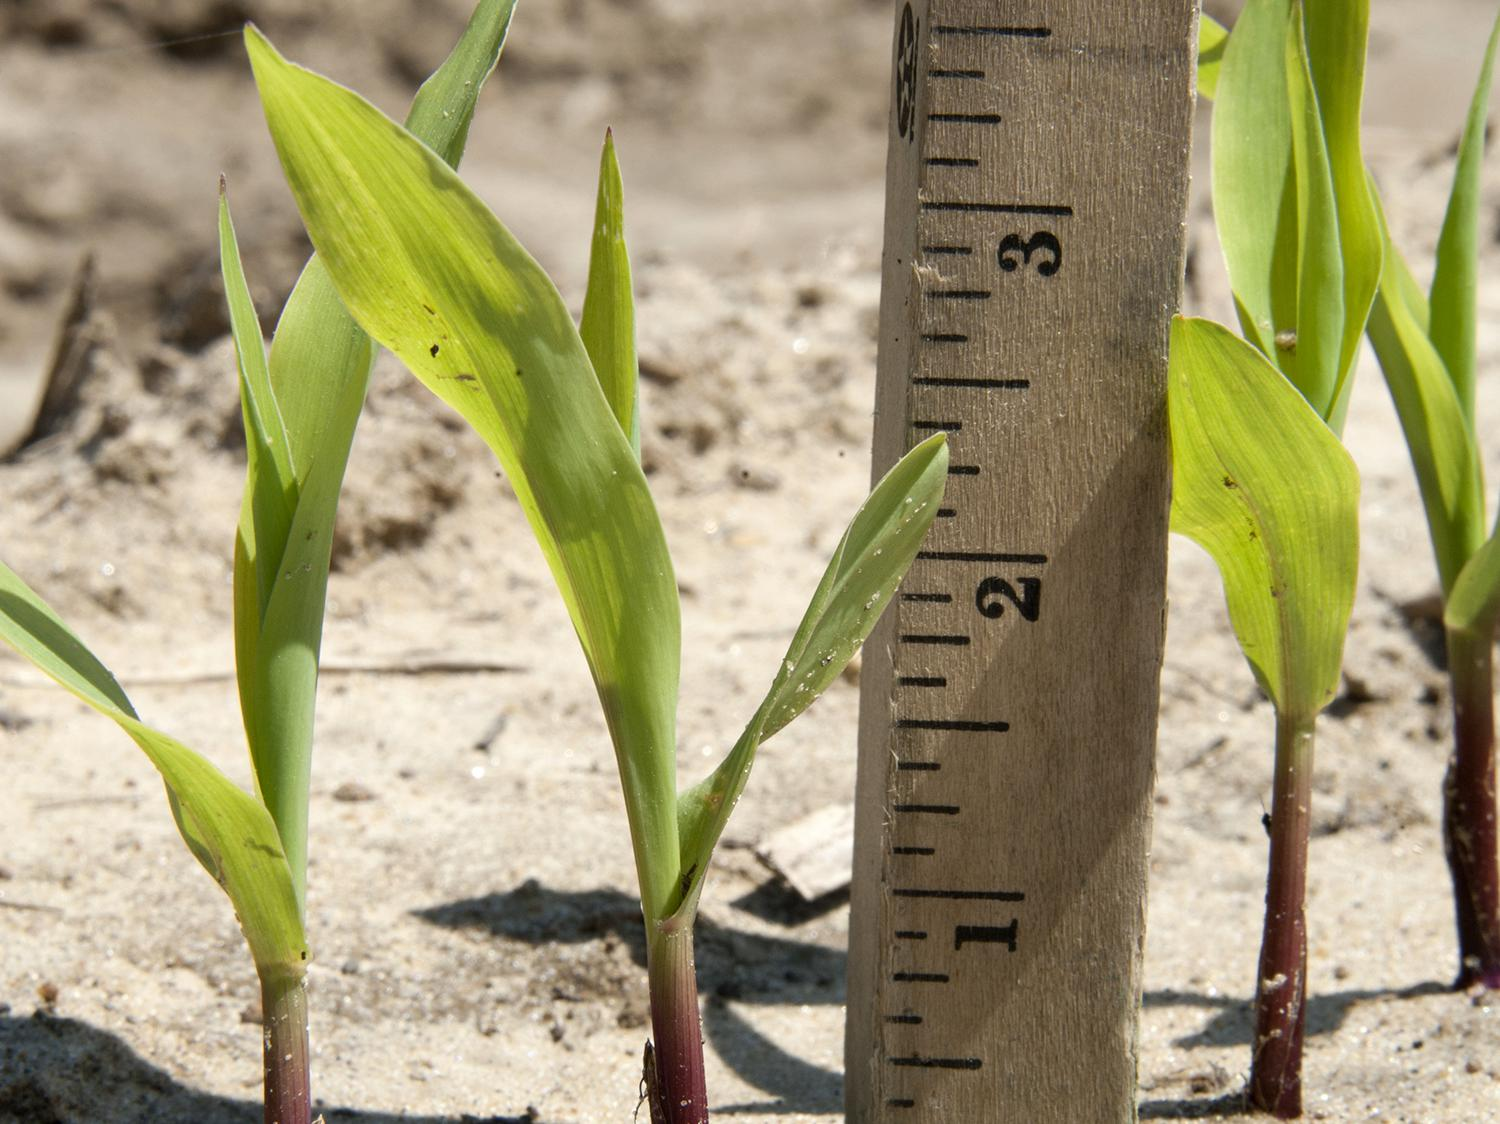 Frequent rains pushed both corn planting and corn emergence behind schedule in Mississippi. This corn was photographed April 21, 2015, in Starkville at Mississippi State University. (Photo by MSU Ag Communications/Kat Lawrence)